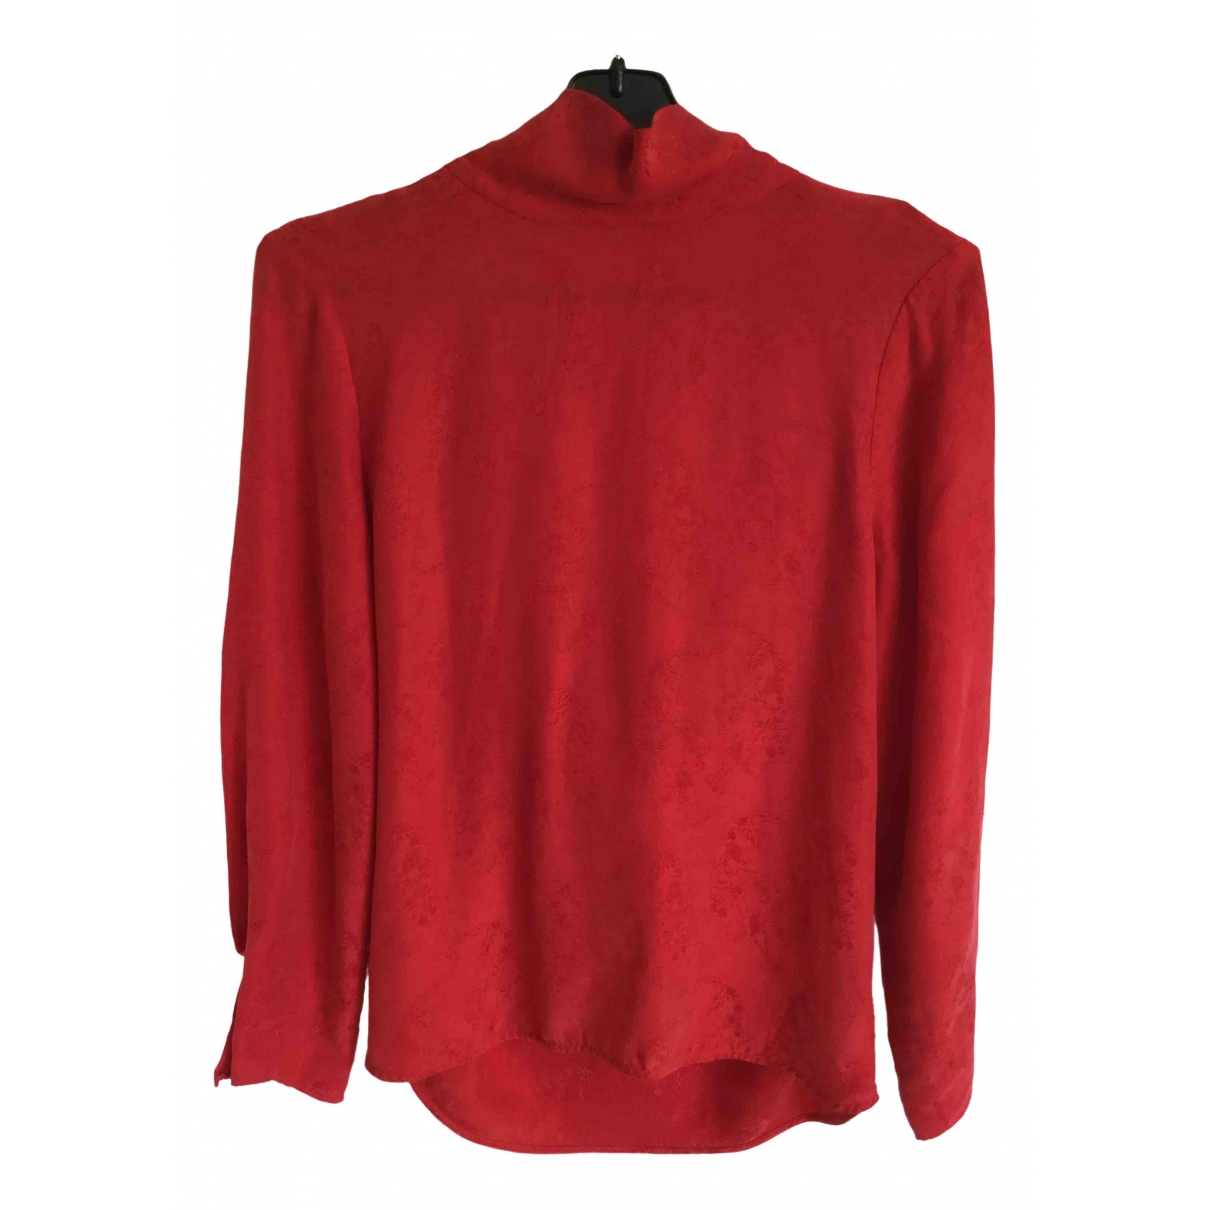 Sandro \N Red  top for Women 6 US